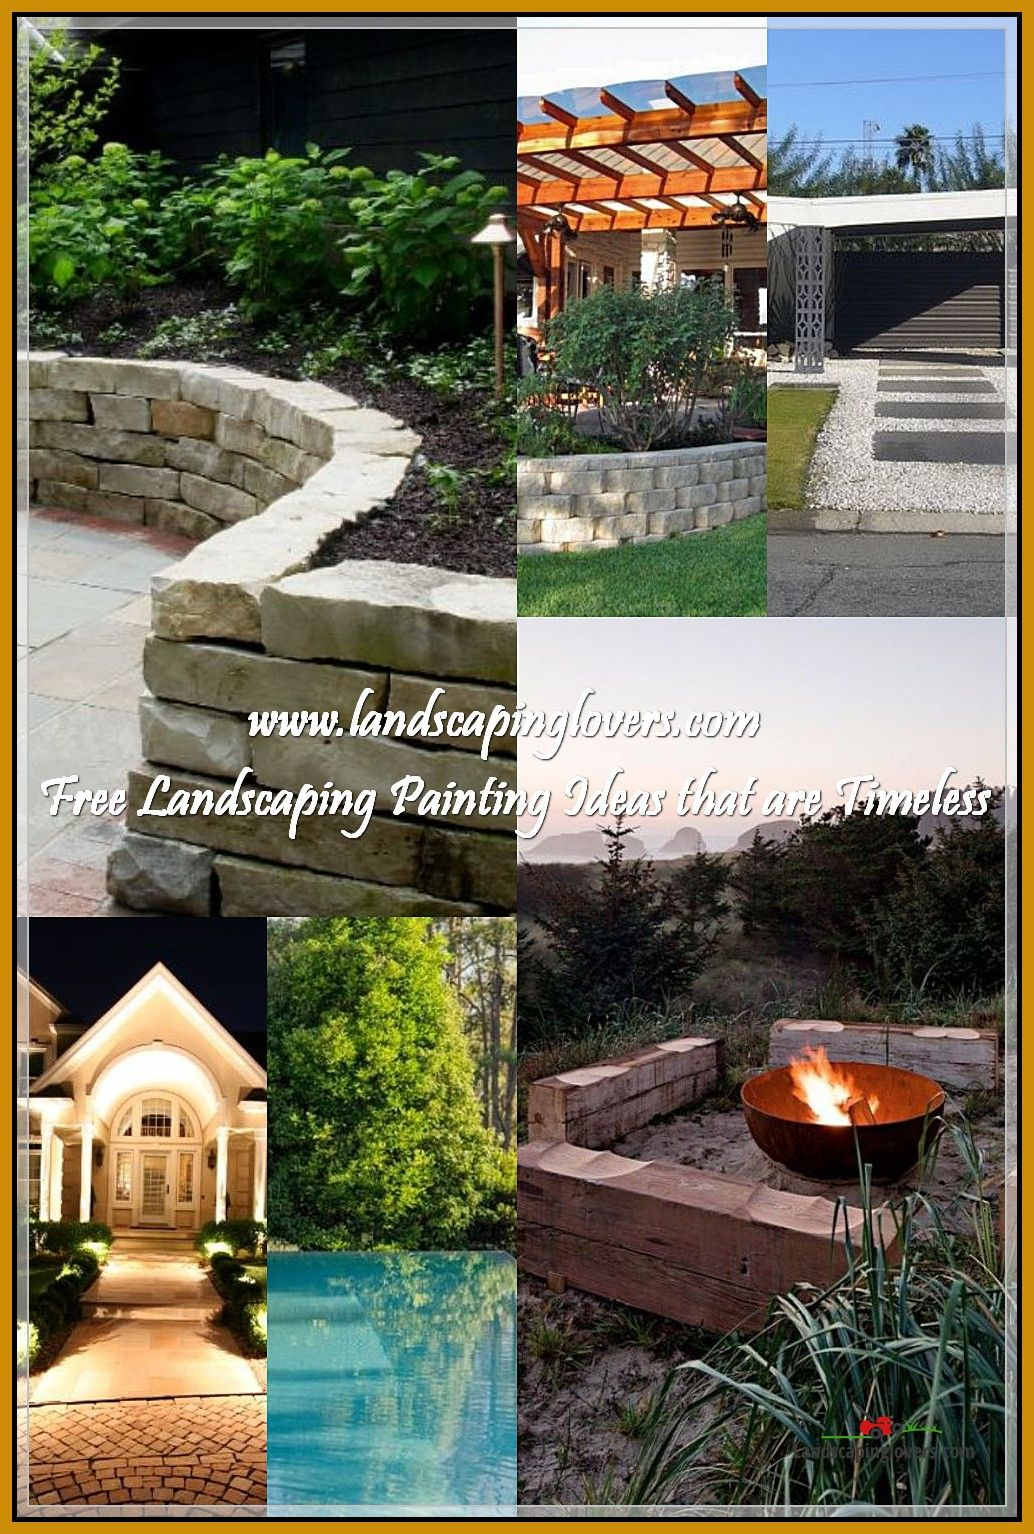 Landscaping Advice For Beginners Landscaping Lovers In 2020 Beginners Landscaping Landscape Landscaping Supplies